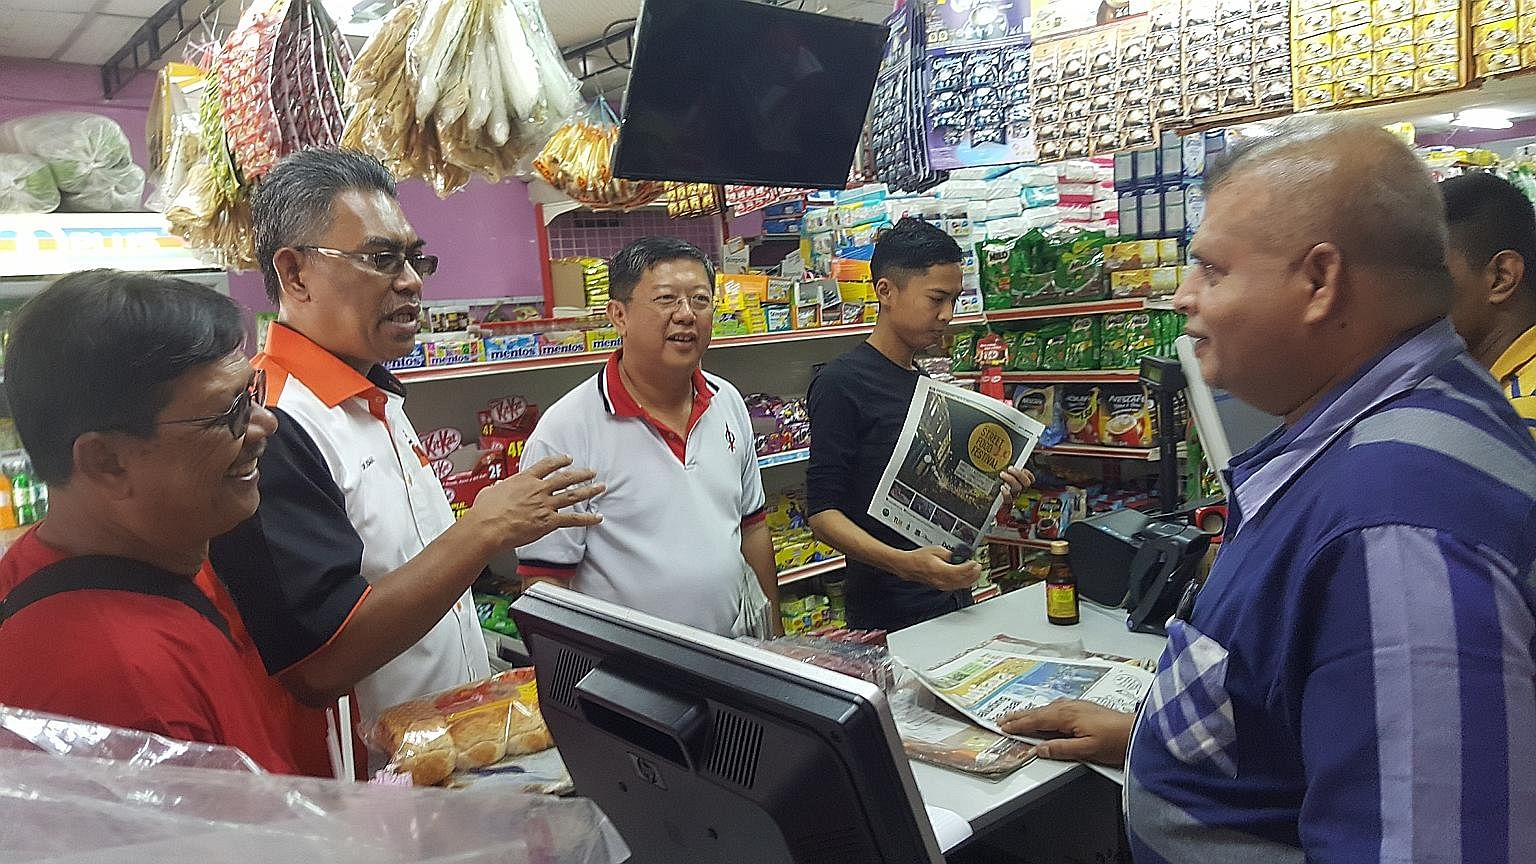 Kedah Amanah chief Ismail Salleh speaking with residents as he and DAP assemblyman Tan Kok Yew work the ground in Ayer Hitam in Kedah. Their Pakatan Harapan alliance is going all out to break the ruling coalition's grip in state strongholds, hoping t